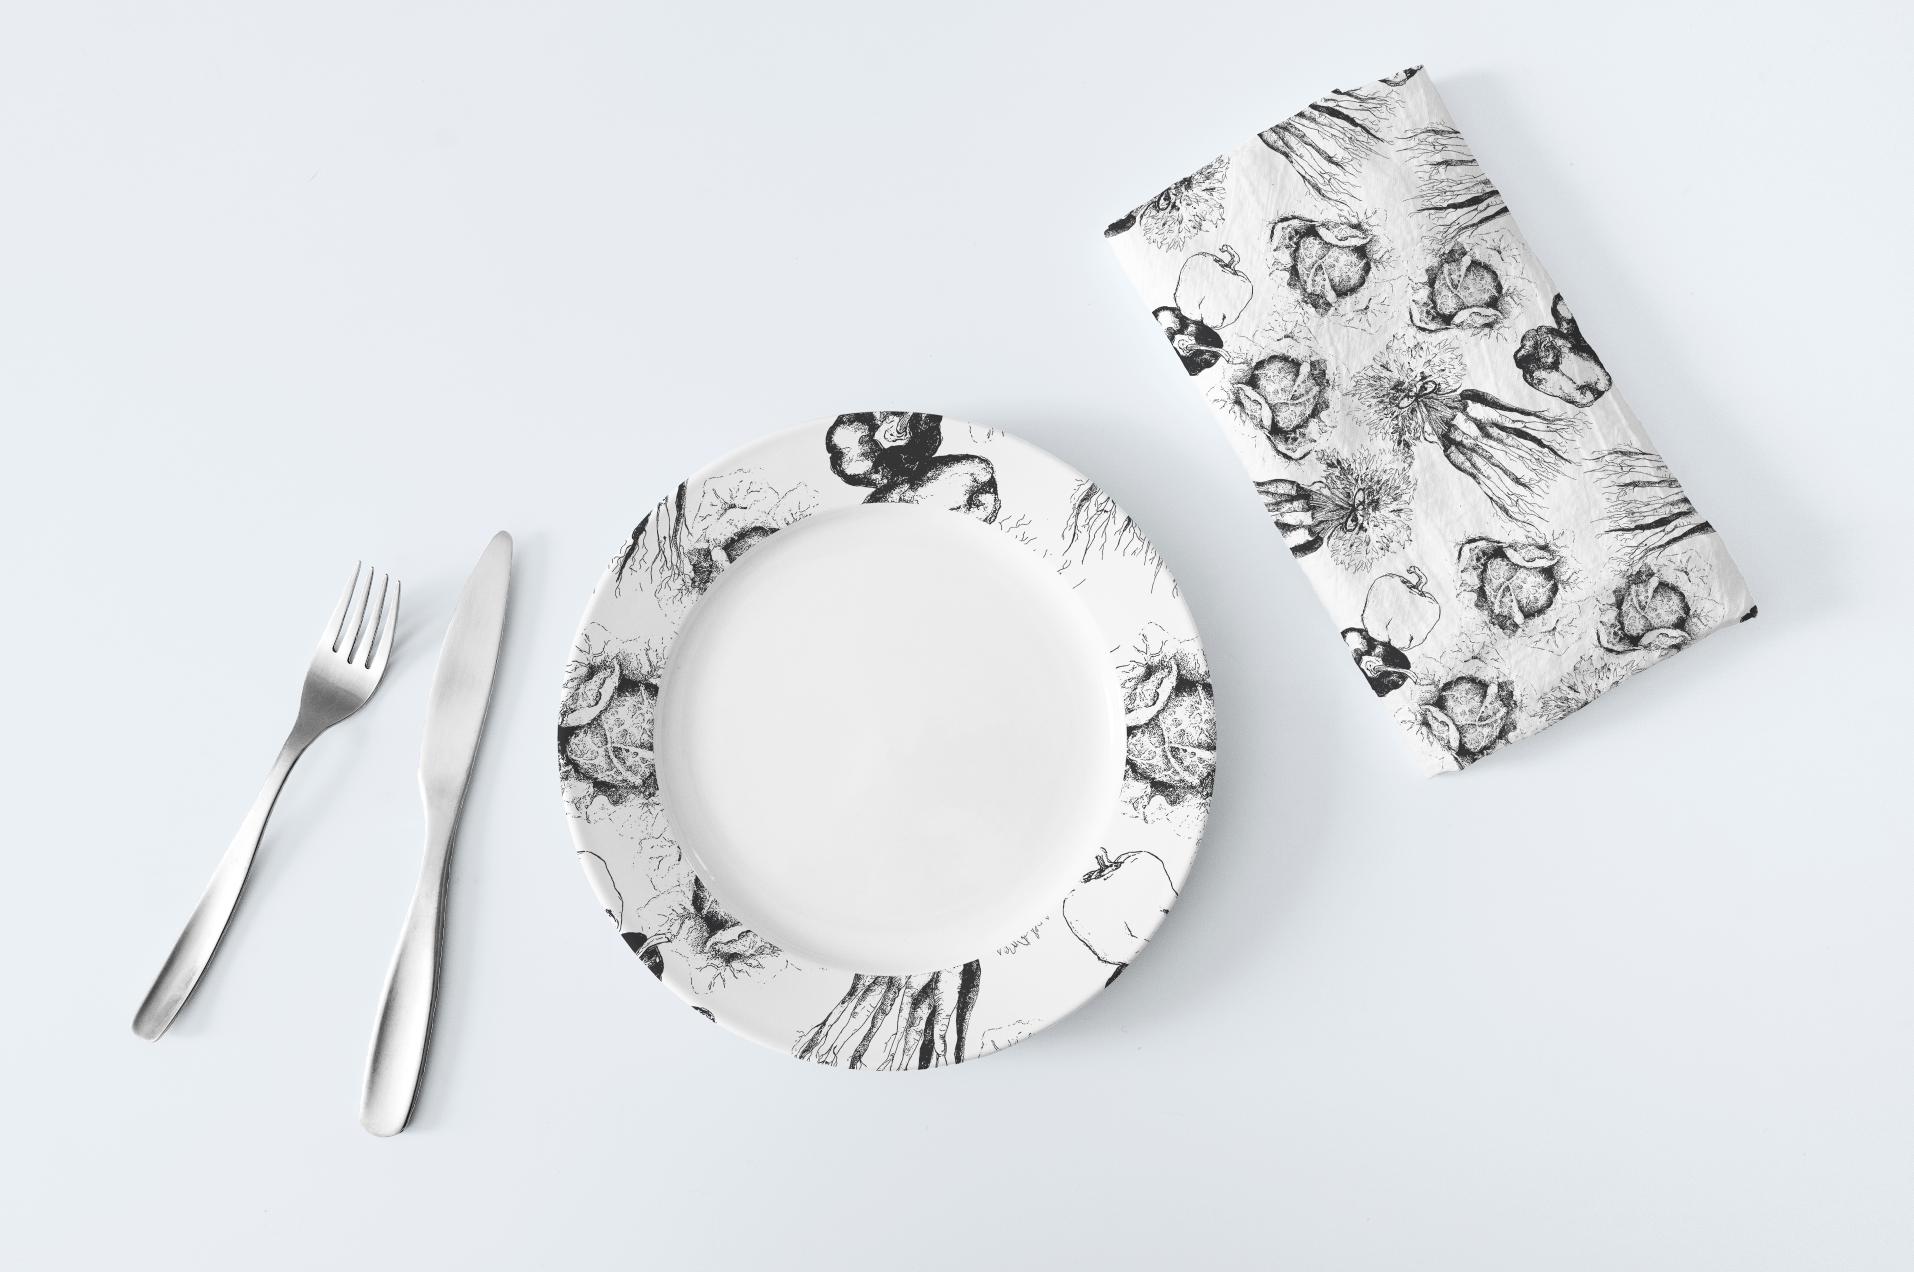 Simple line drawings done in black and white can make an elegant statement on paper goods, plates, fabric, gift wrap or even wall paper.